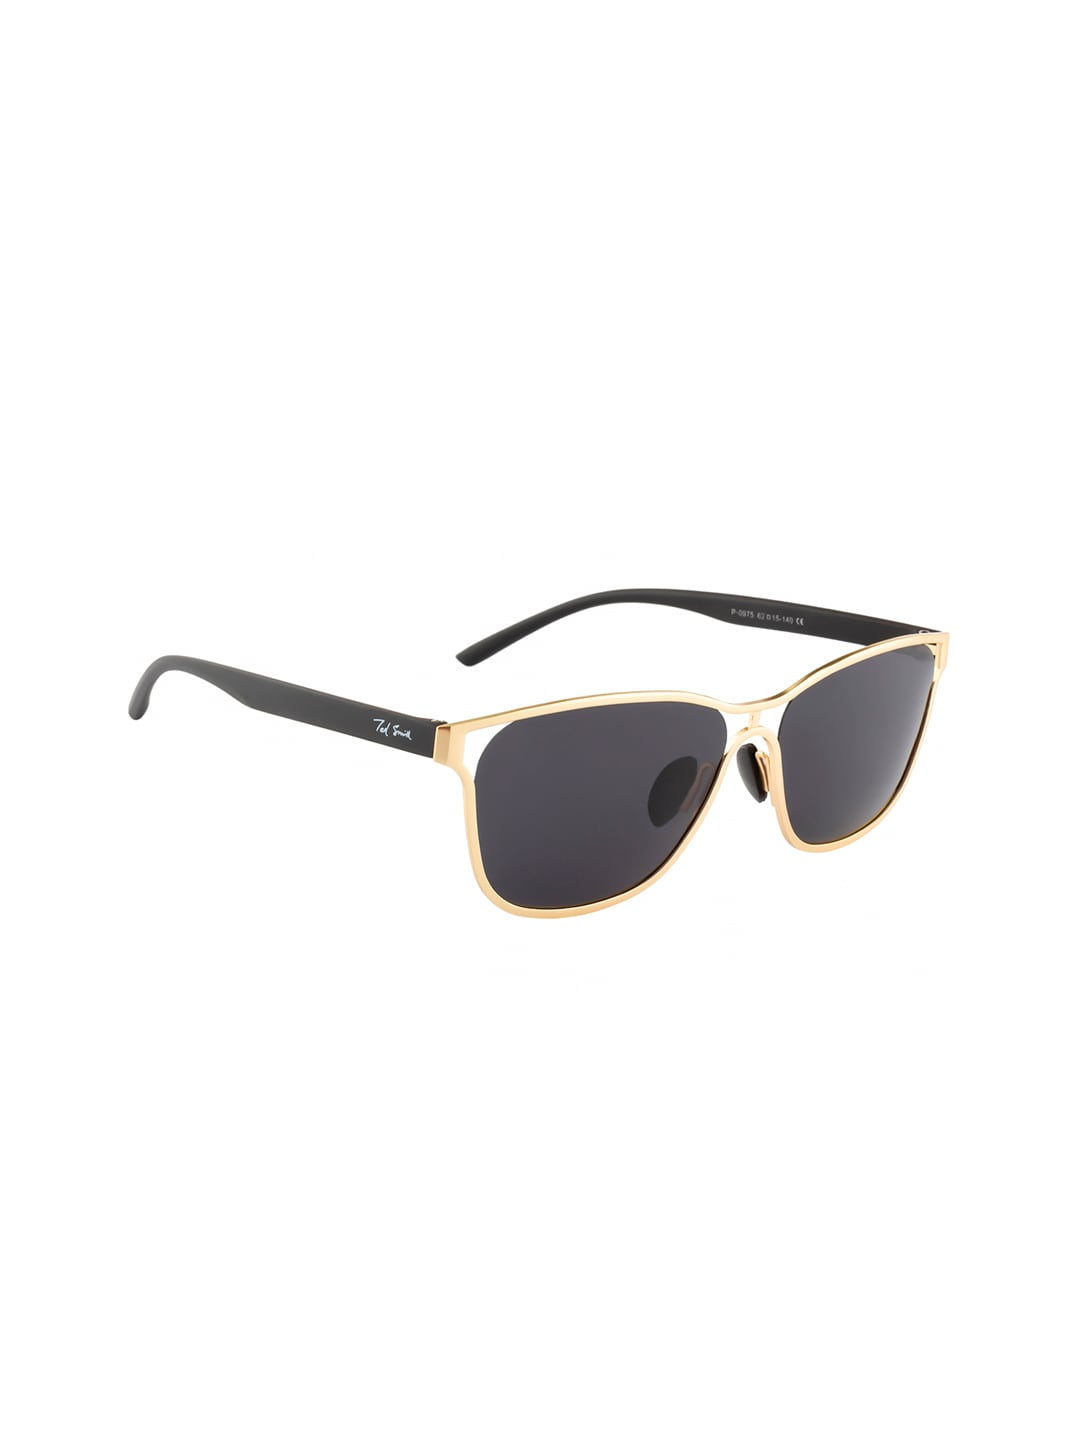 43ca9783f6 Sunglasses - Buy Shades for Men and Women Online in India